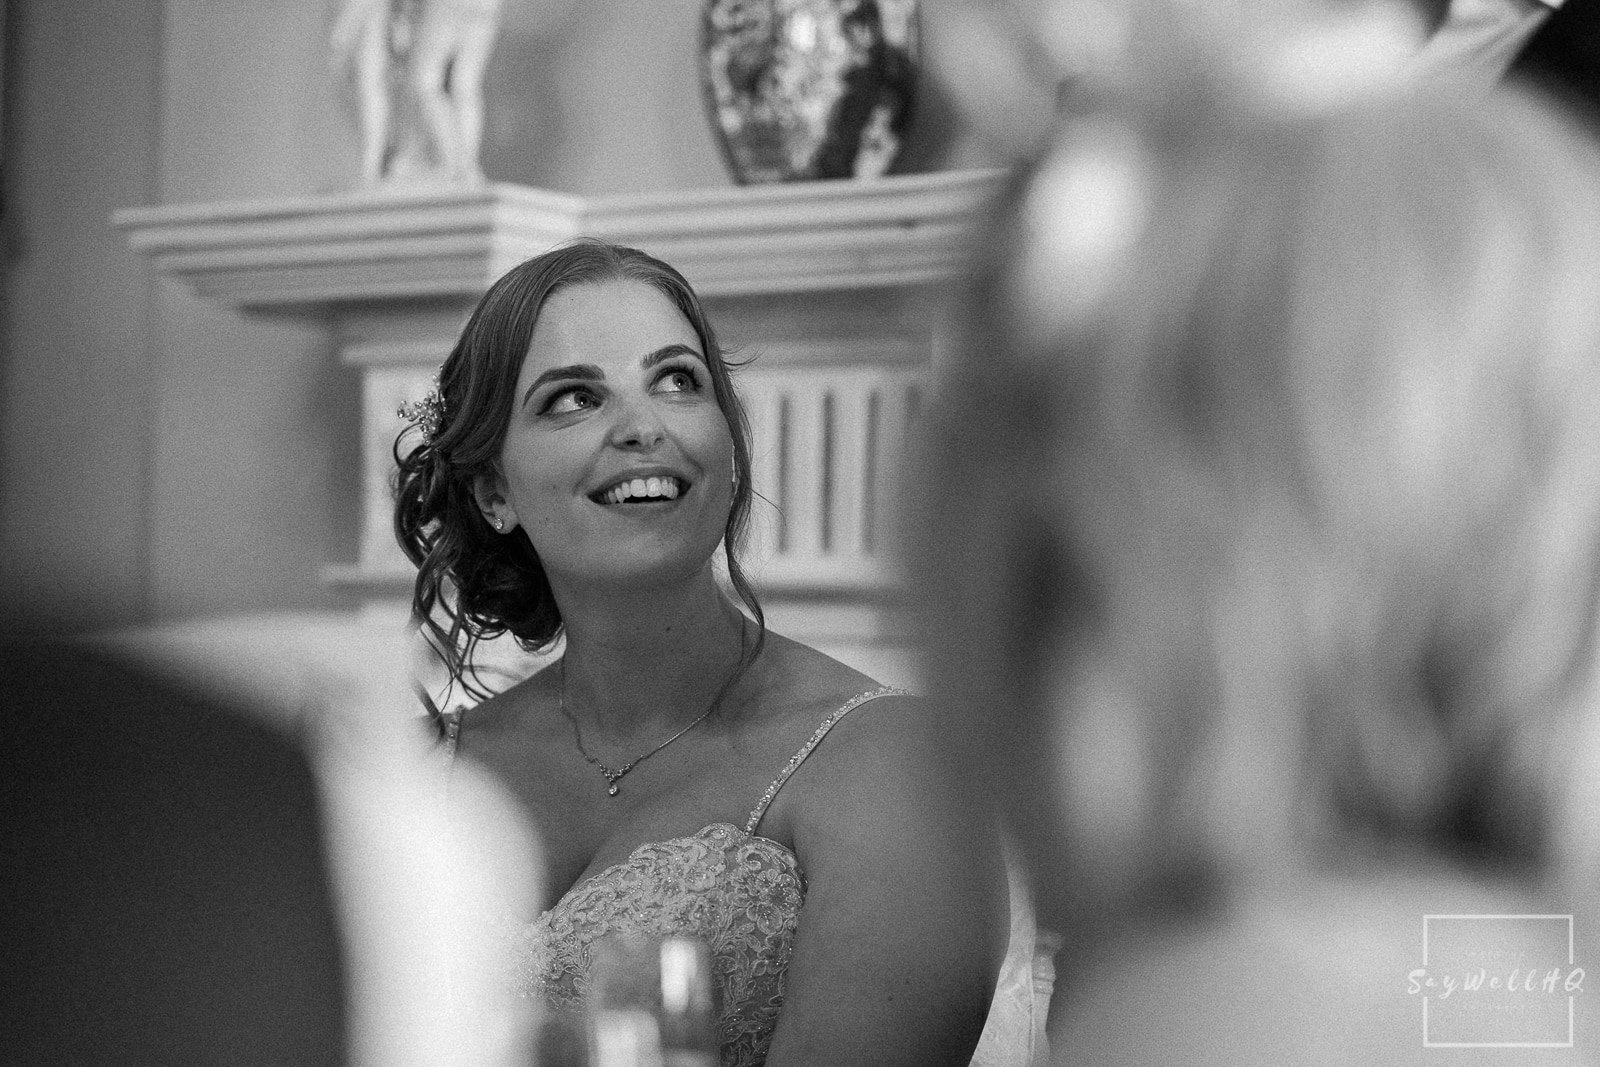 Prestwold Hall Wedding Photography - wedding speches in the main room at Prestwold Hall